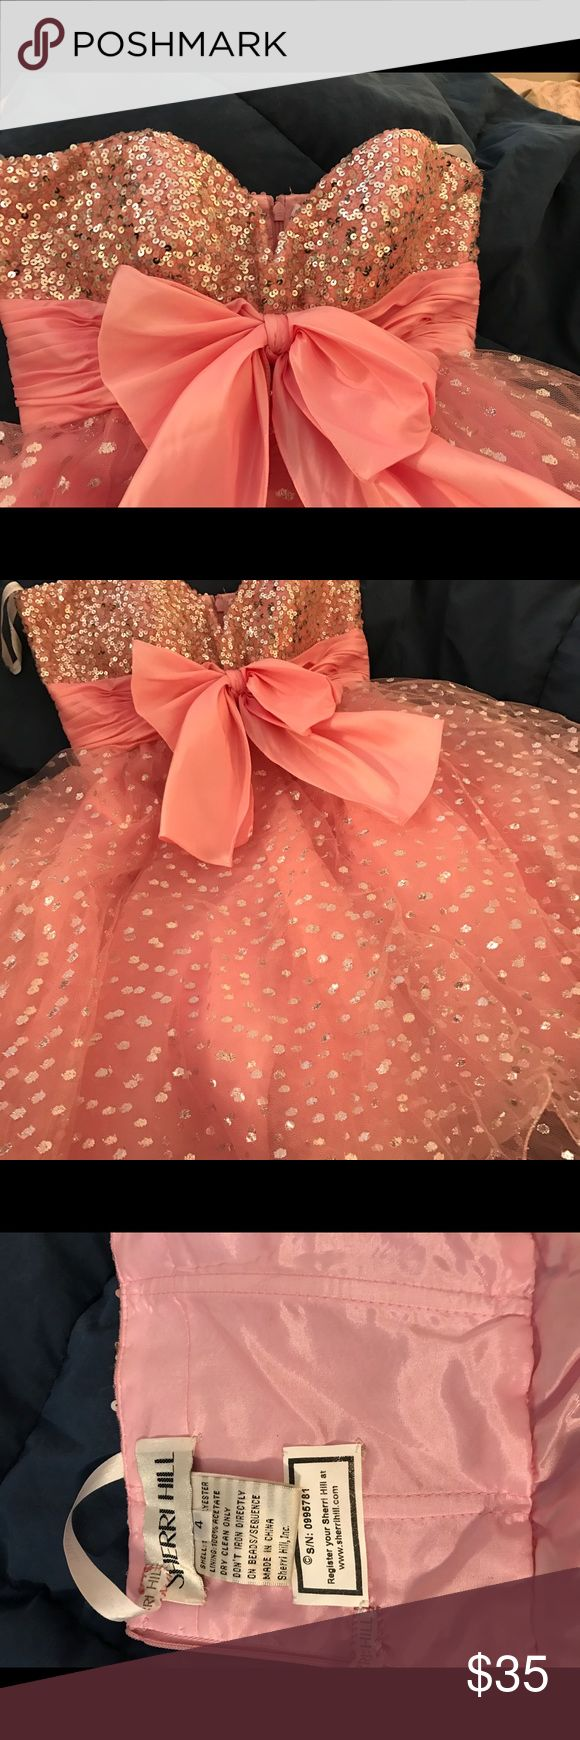 Sherri Hill Dress Cute pink dress with sequined bodice. Size 4. Condition is good, but Dress has been used and is priced accordingly. Sherri Hill Dresses Mini